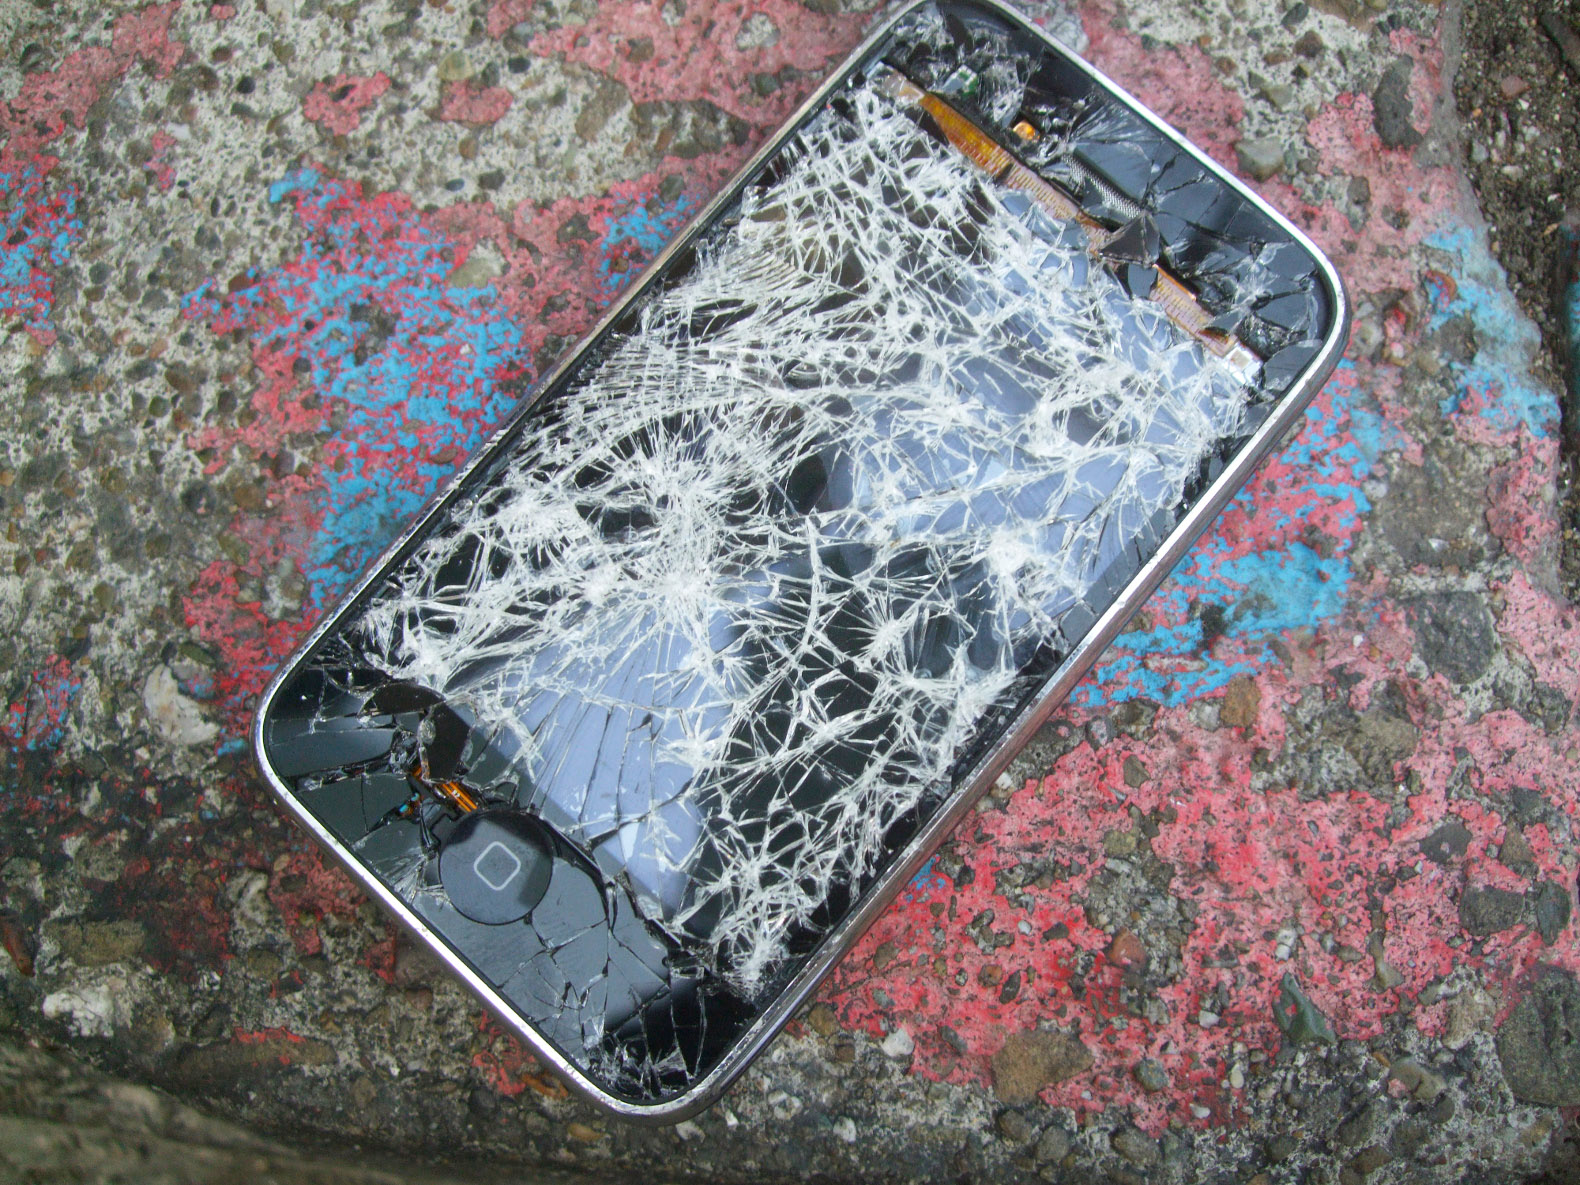 Cracked cellphone screens will soon be able to repair themselves